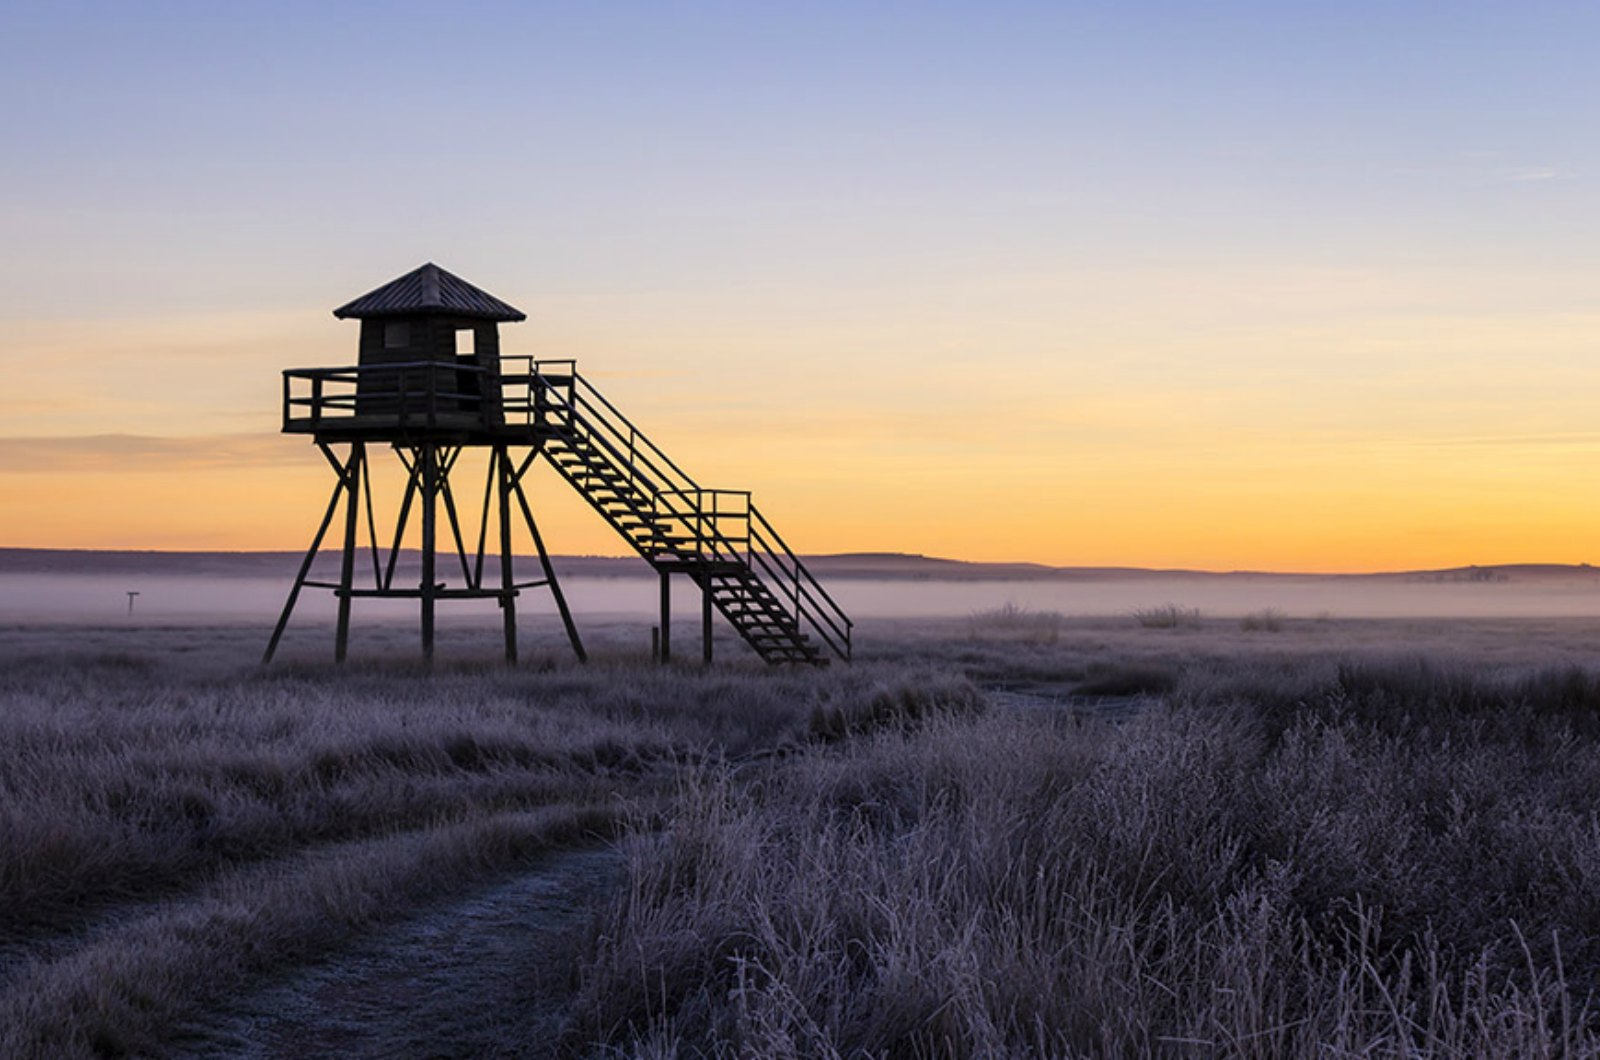 Dawn breaks on the reed beds at gallocanta with the hide on stilts a silhoutte against the sky on our Birds of Northern Spain trip in the Spanish Pyrenees